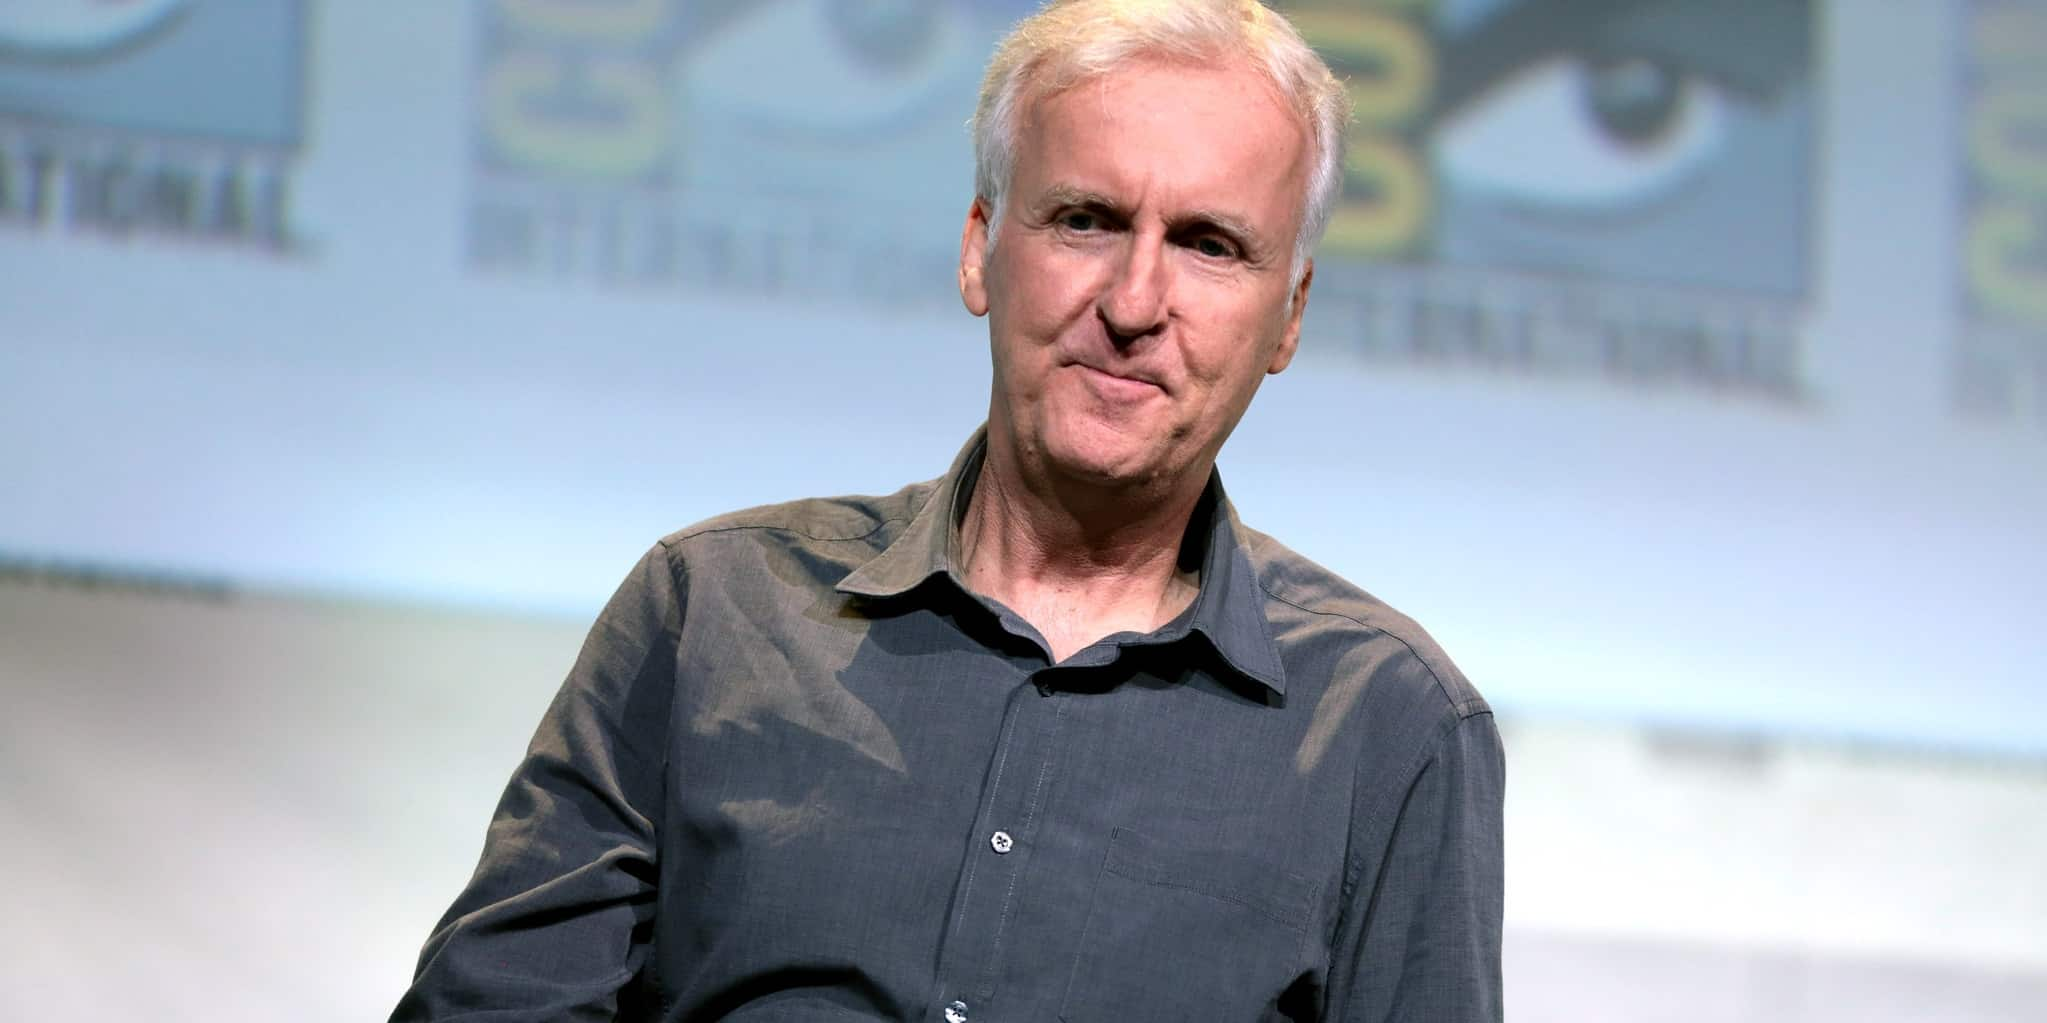 Avatar Avengers Endgame Box Office Rounding Error James Cameron Featured